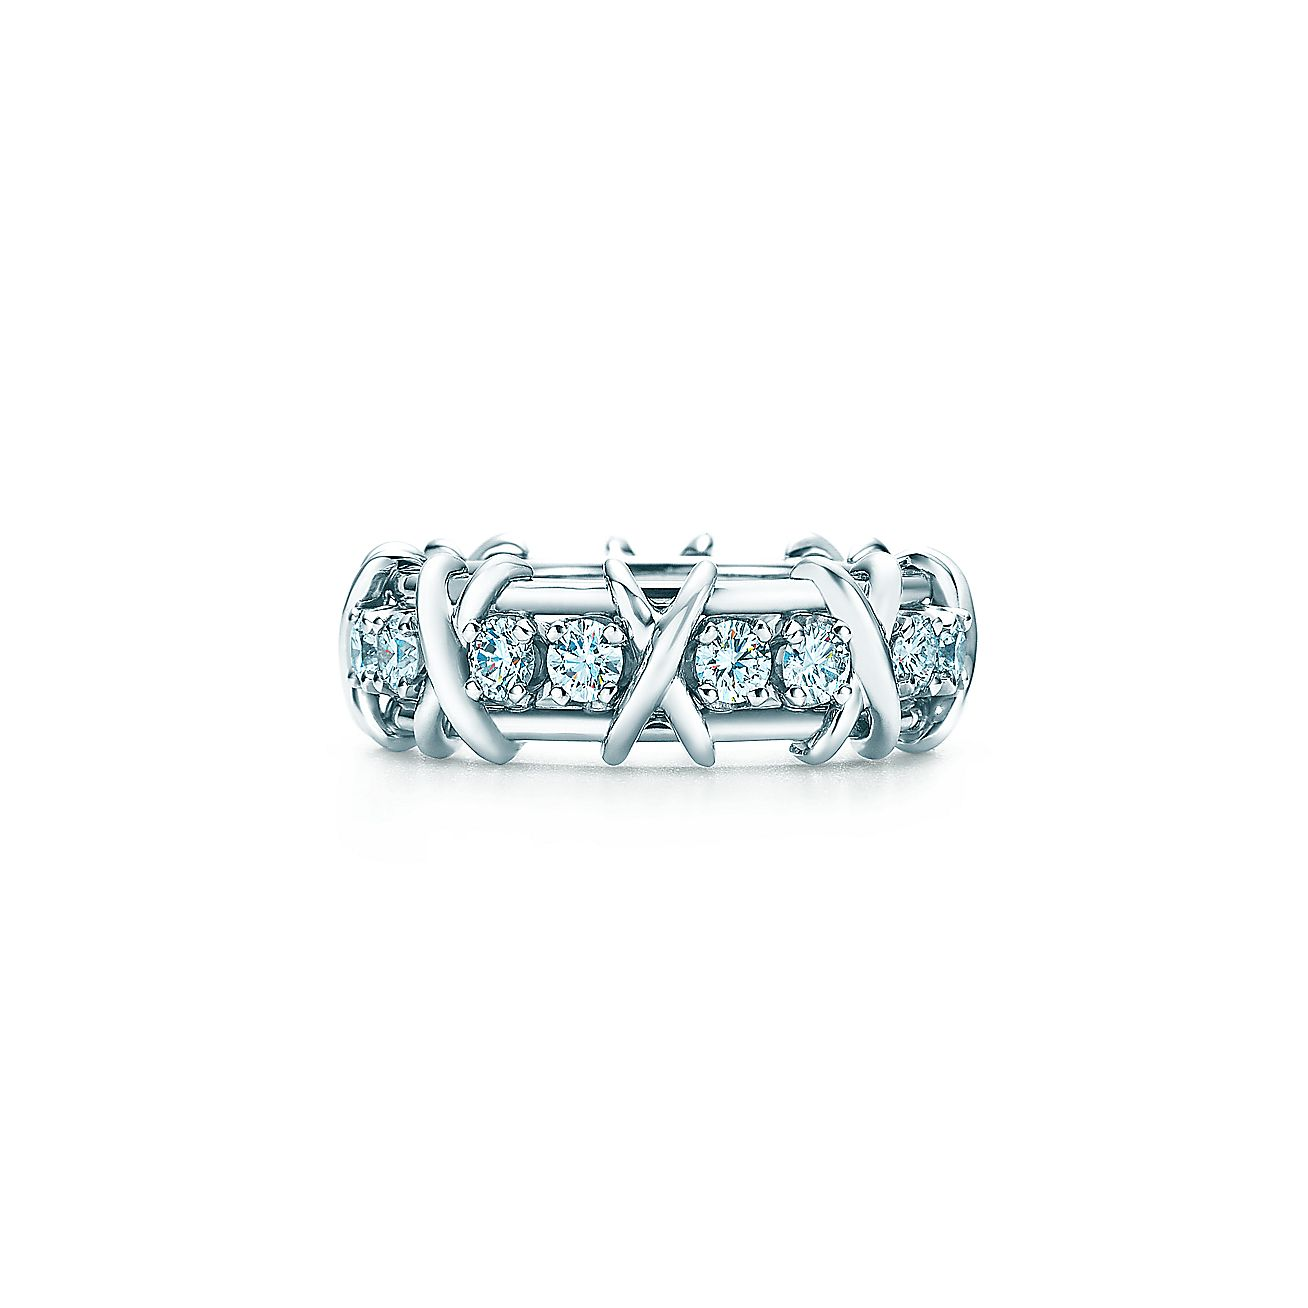 tiffany co schlumberger eighteen stone ring in platinum with diamonds tiffany co. Black Bedroom Furniture Sets. Home Design Ideas